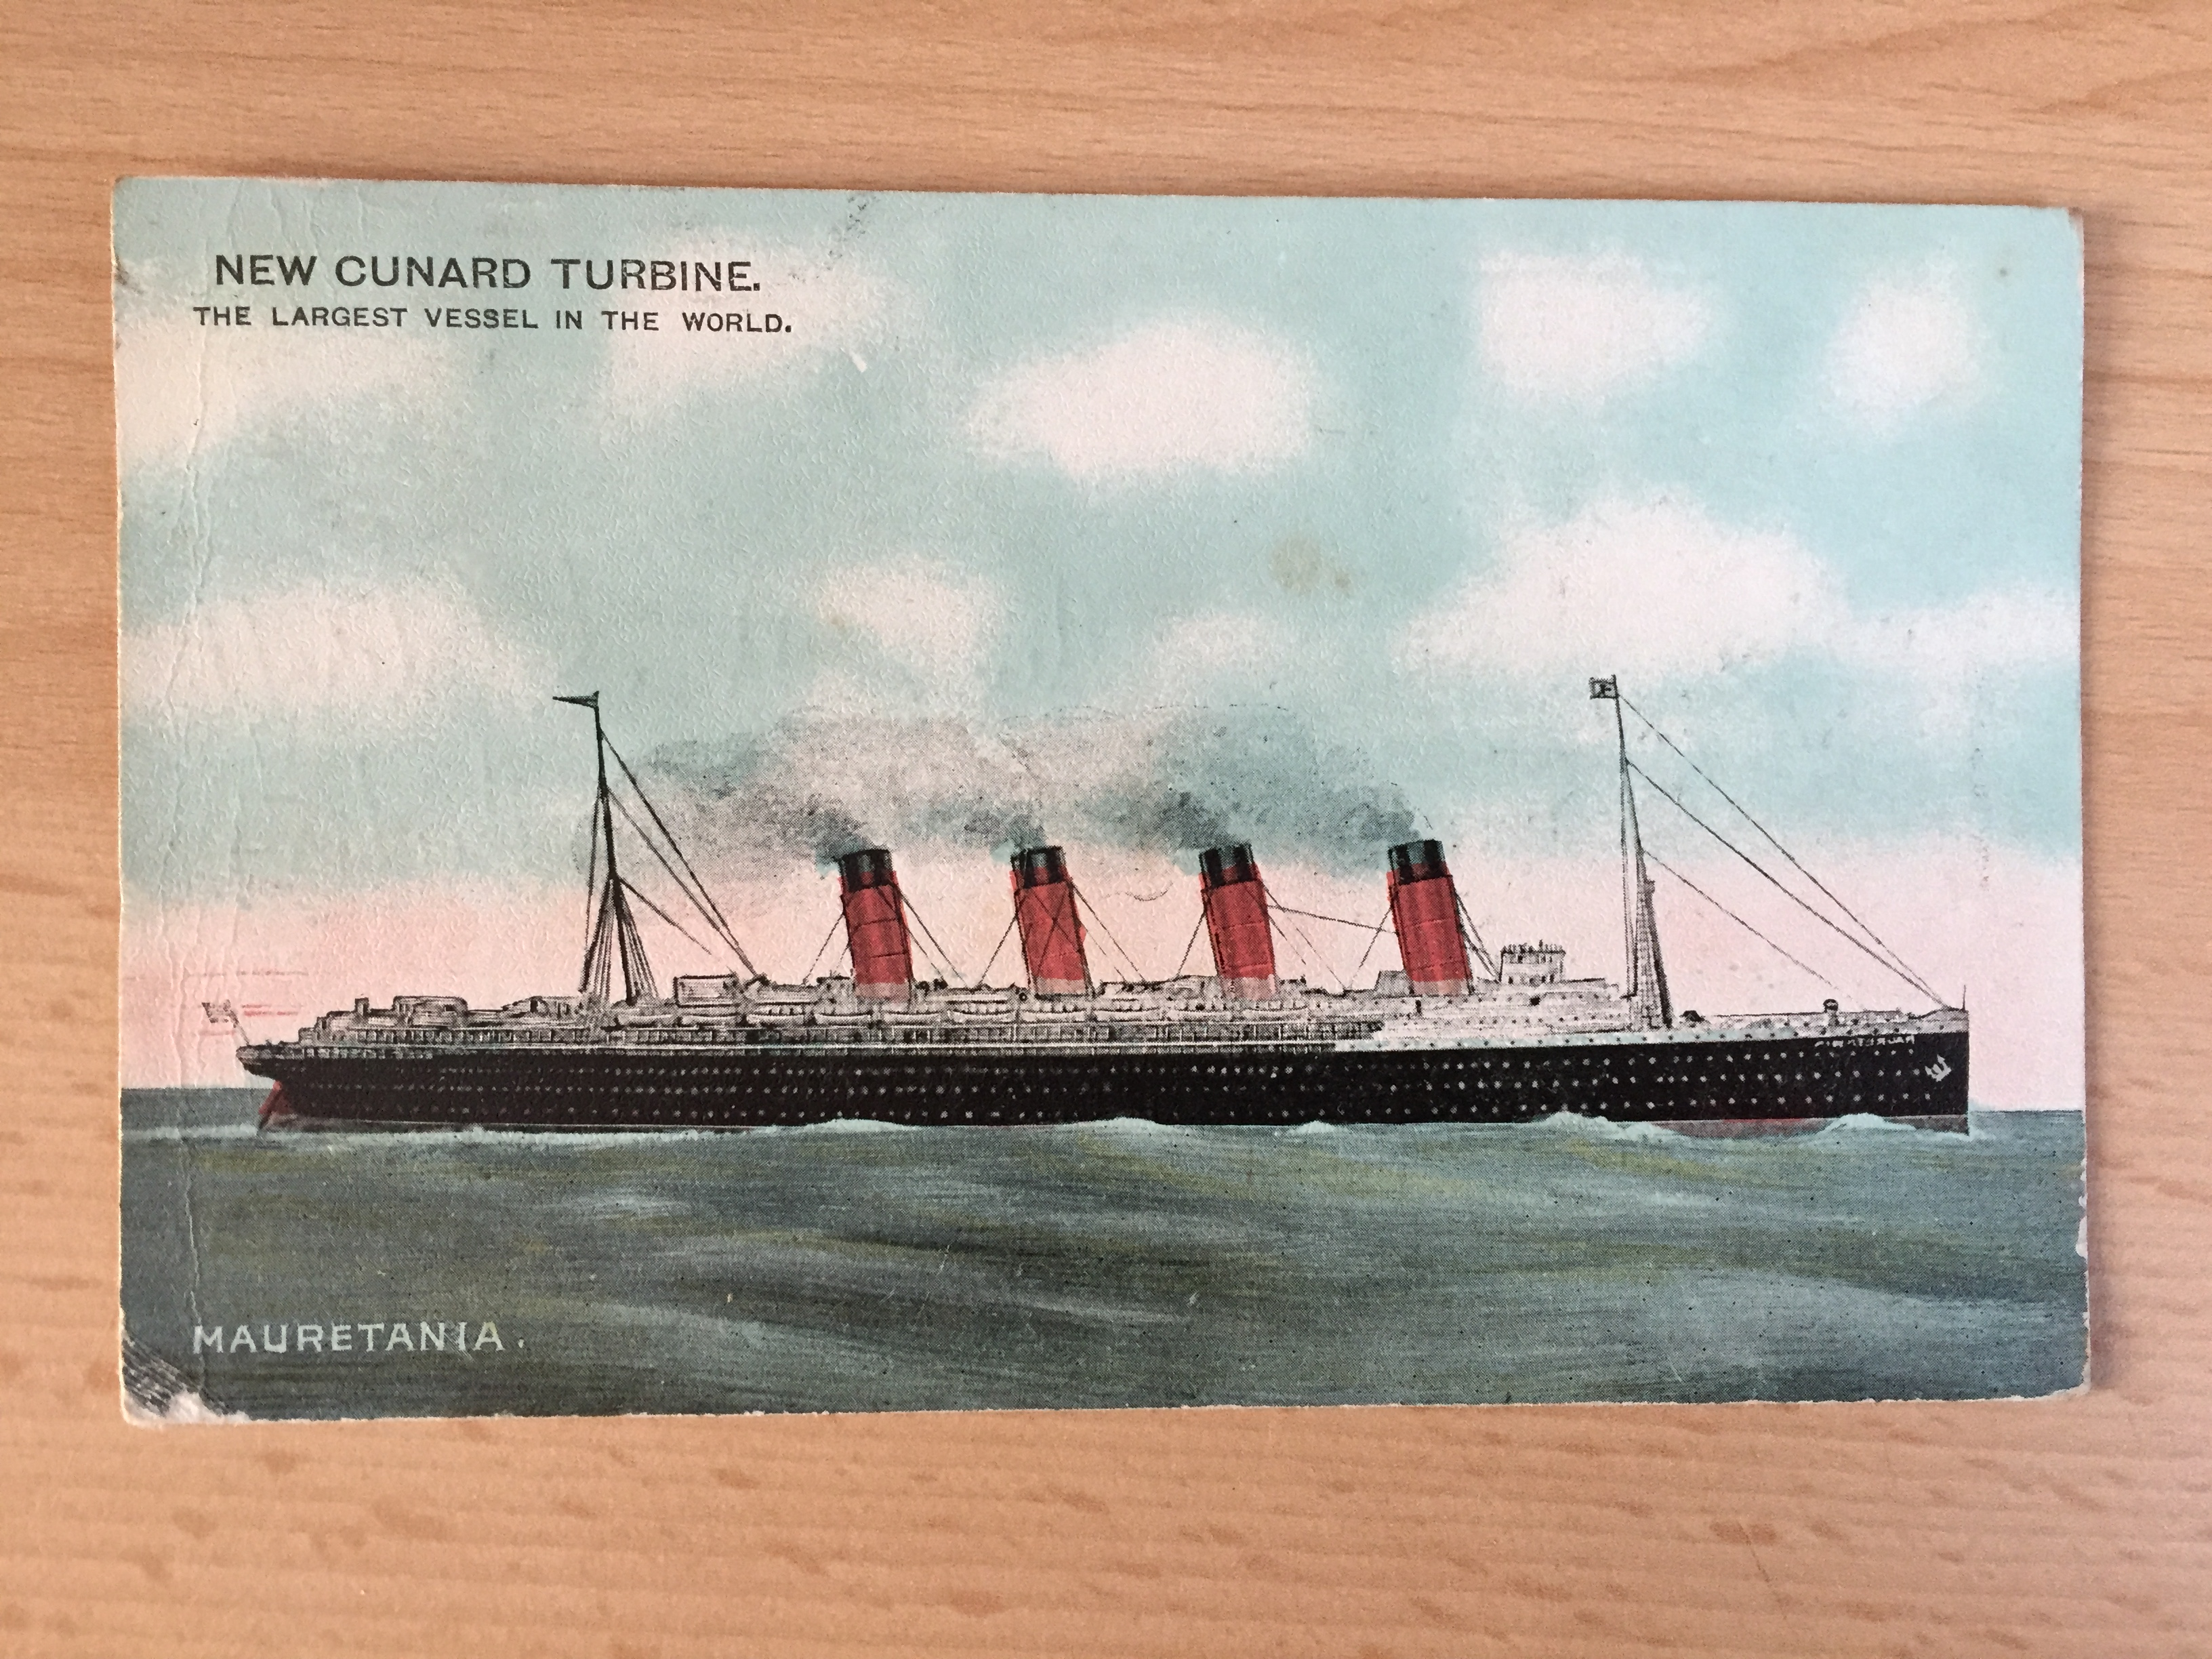 USED COLOUR POSTCARD OF THE FAMOUS OLD VESSEL THE RMS MAURETANIA